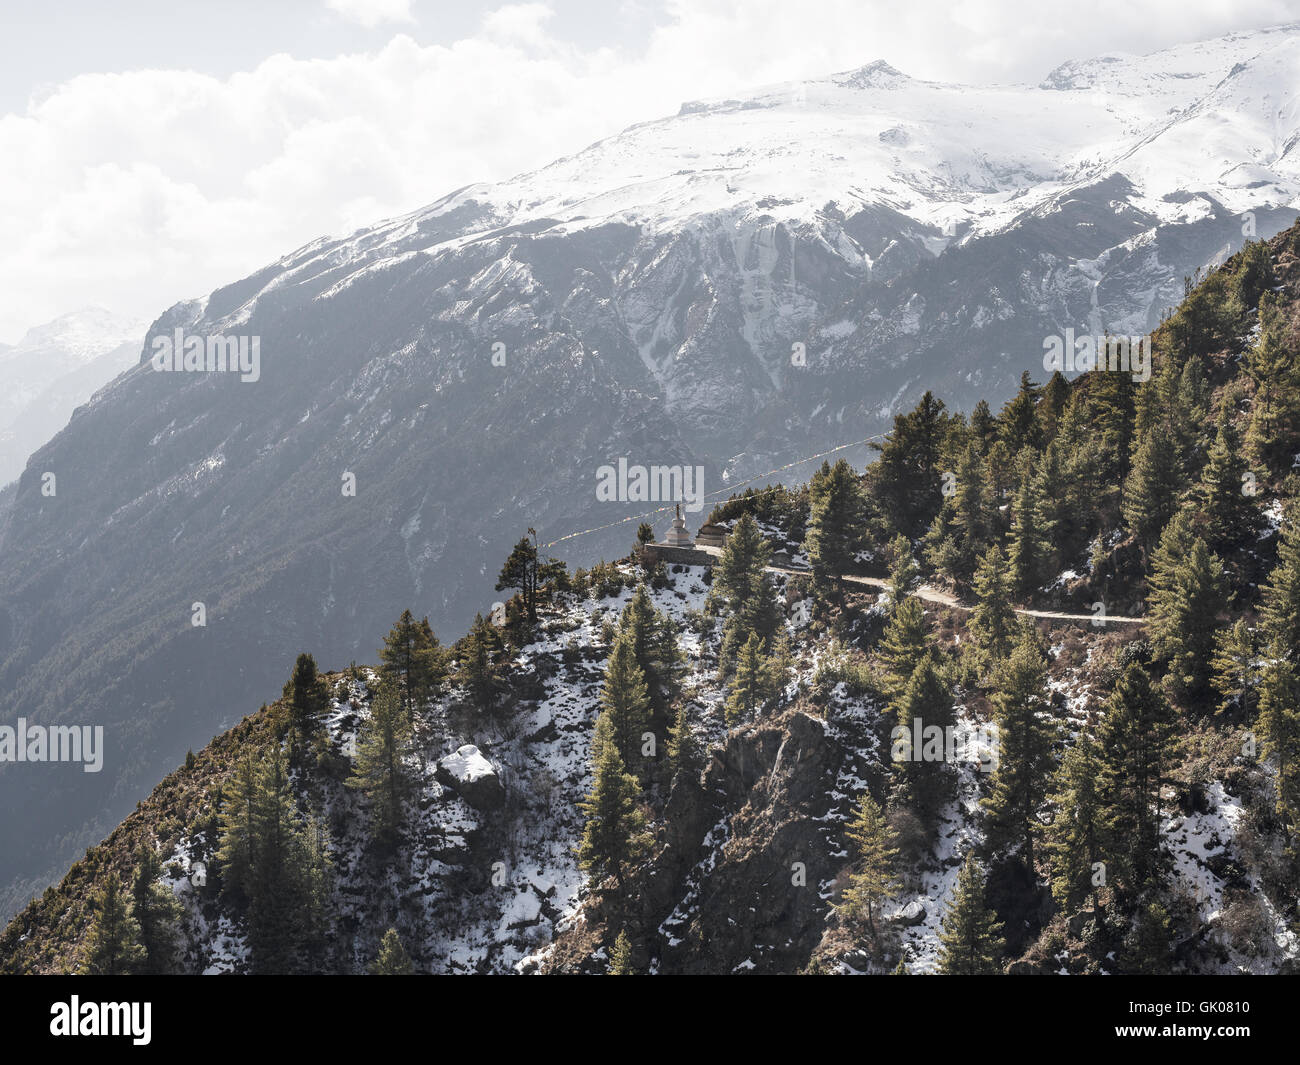 Evergreens in the Himalayas near Namche, Nepal - Stock Image